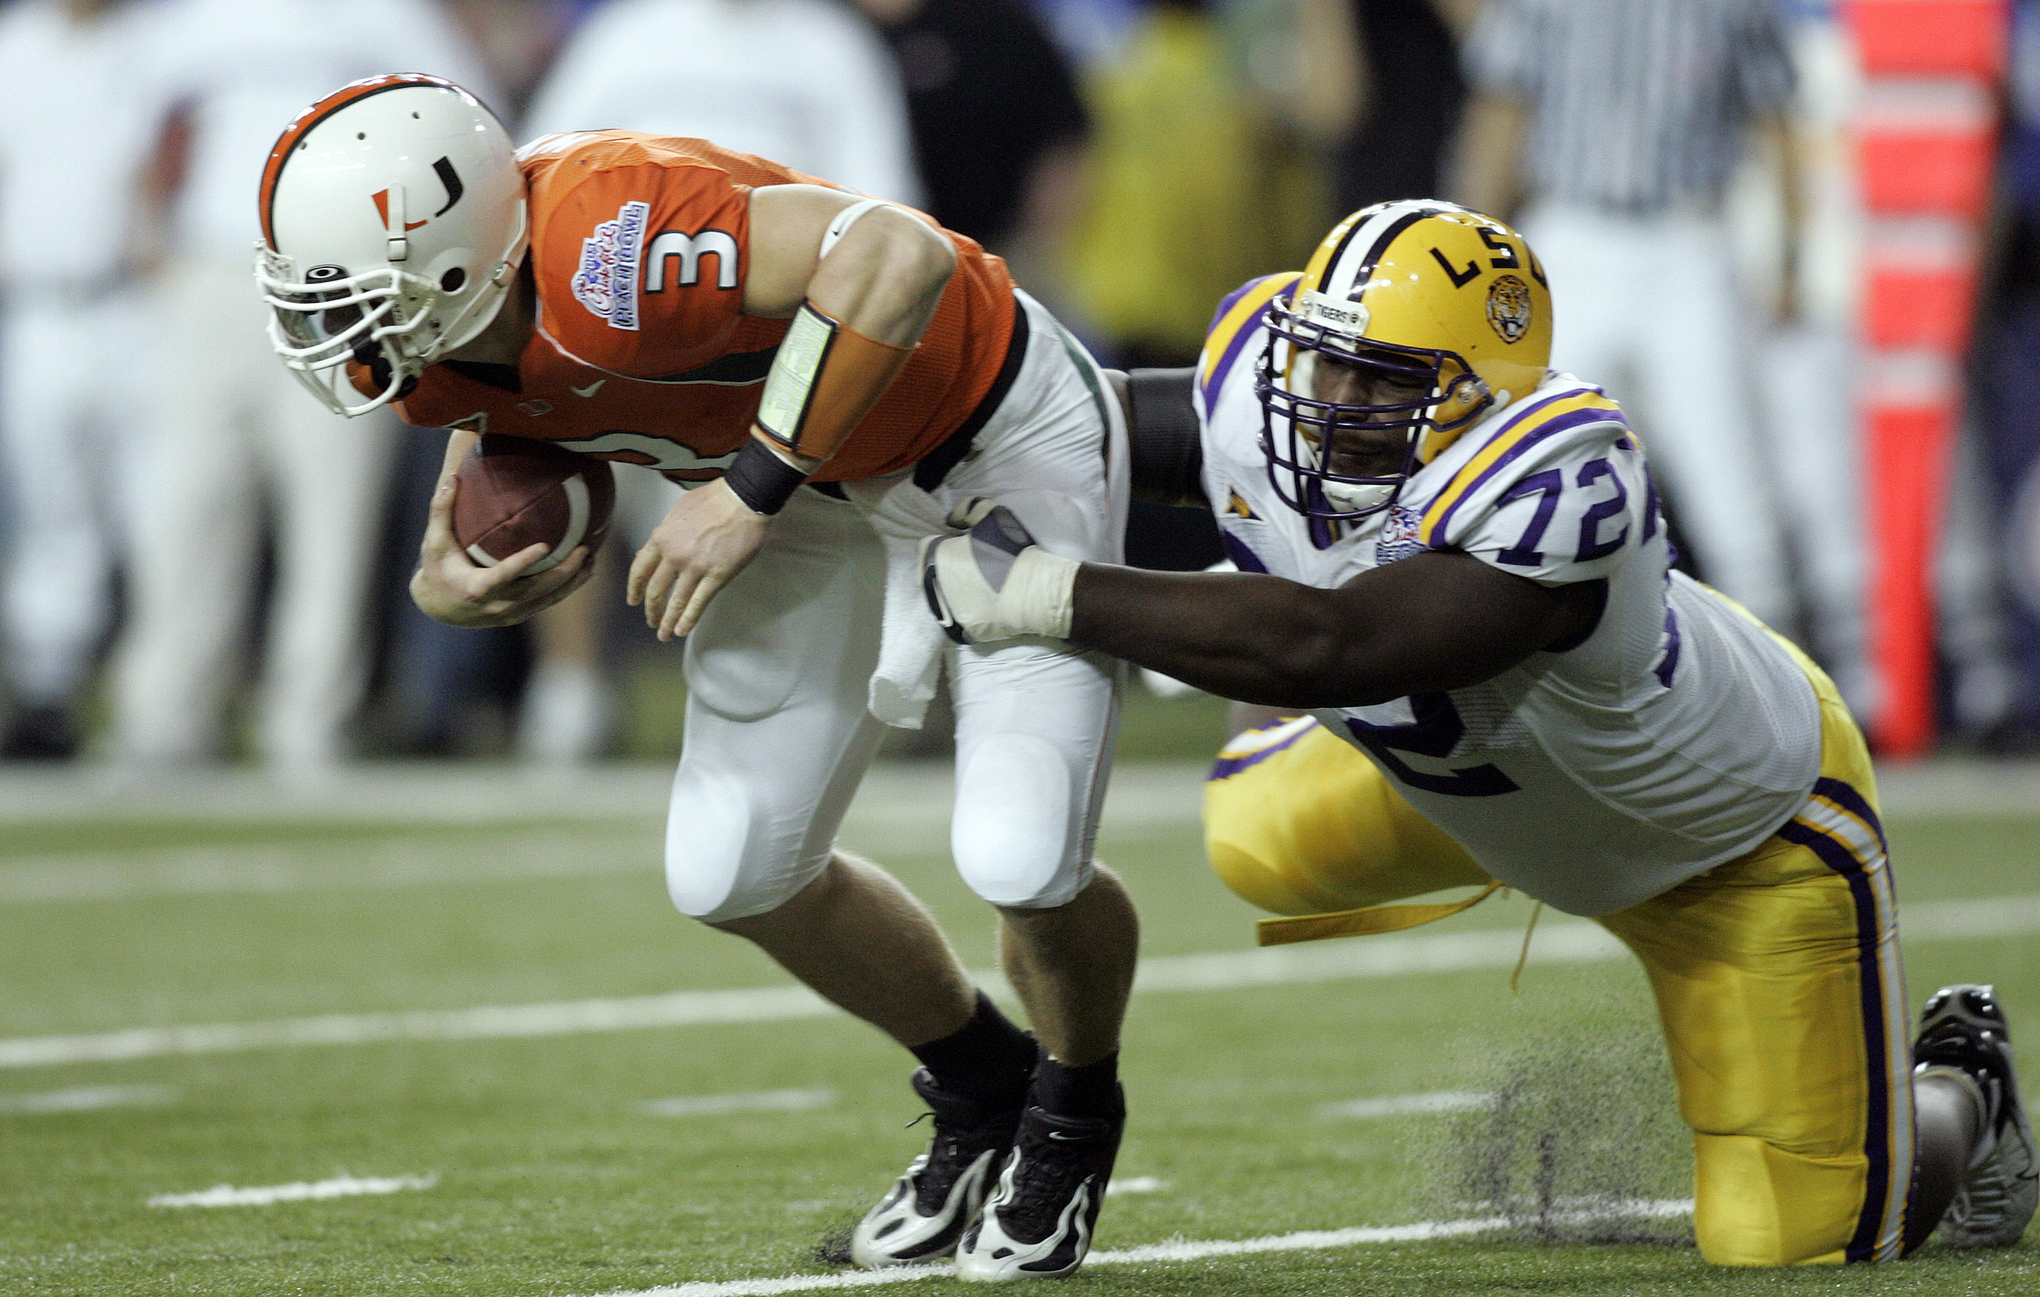 Miami's #3 Kyle Wright is sacked by Louisiana State's #72 Glenn Dorsey during the Tigers win over Miami on December 30, 2005